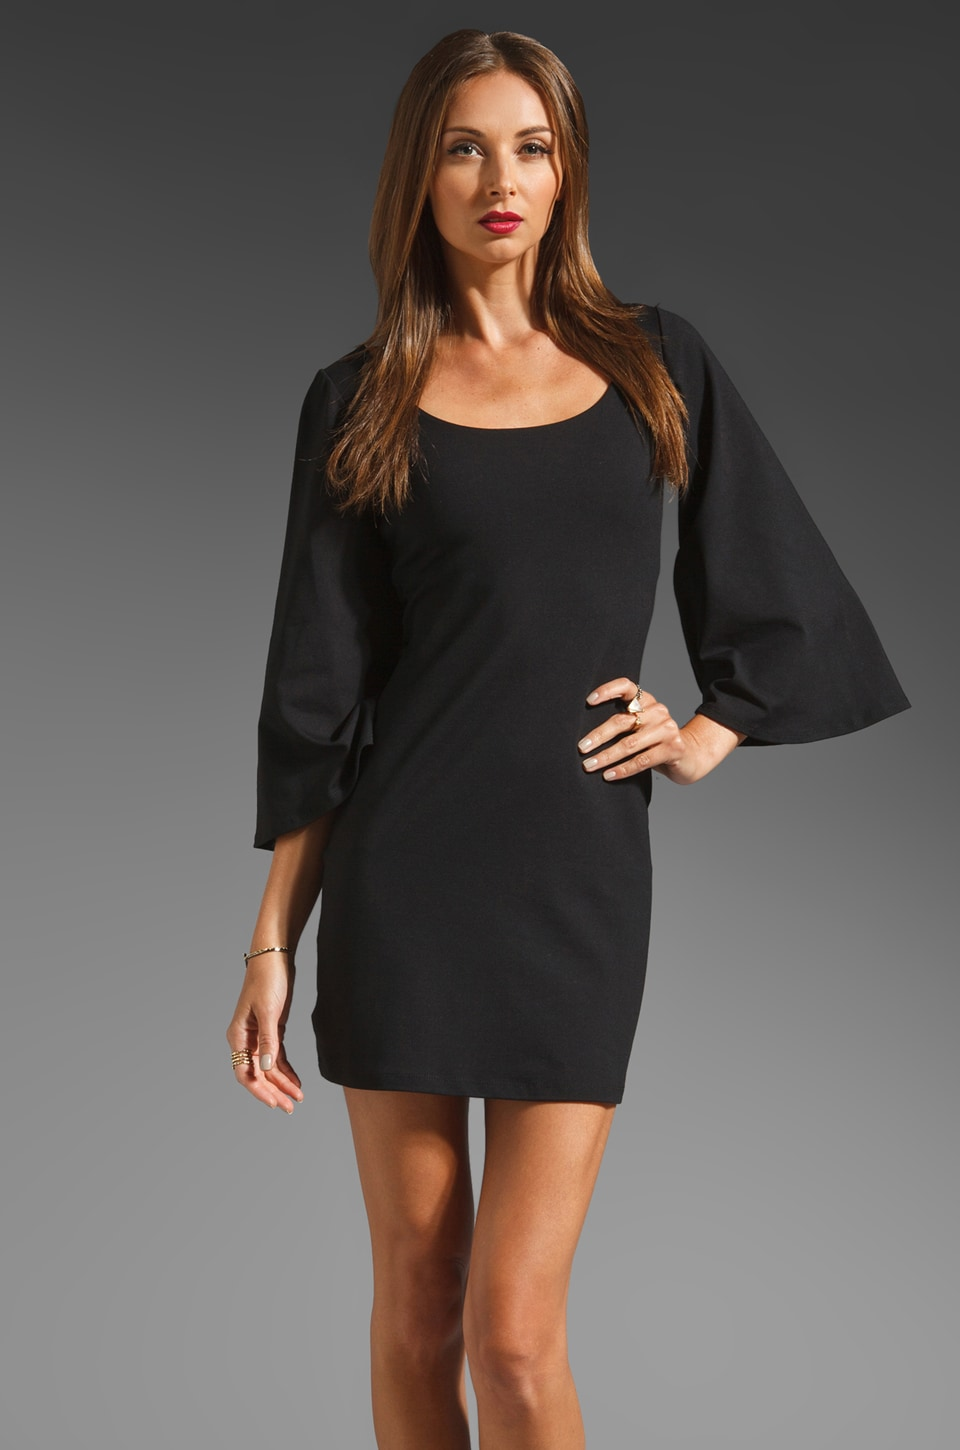 Susana Monaco Billow Sleeve Scoop Dress in Black